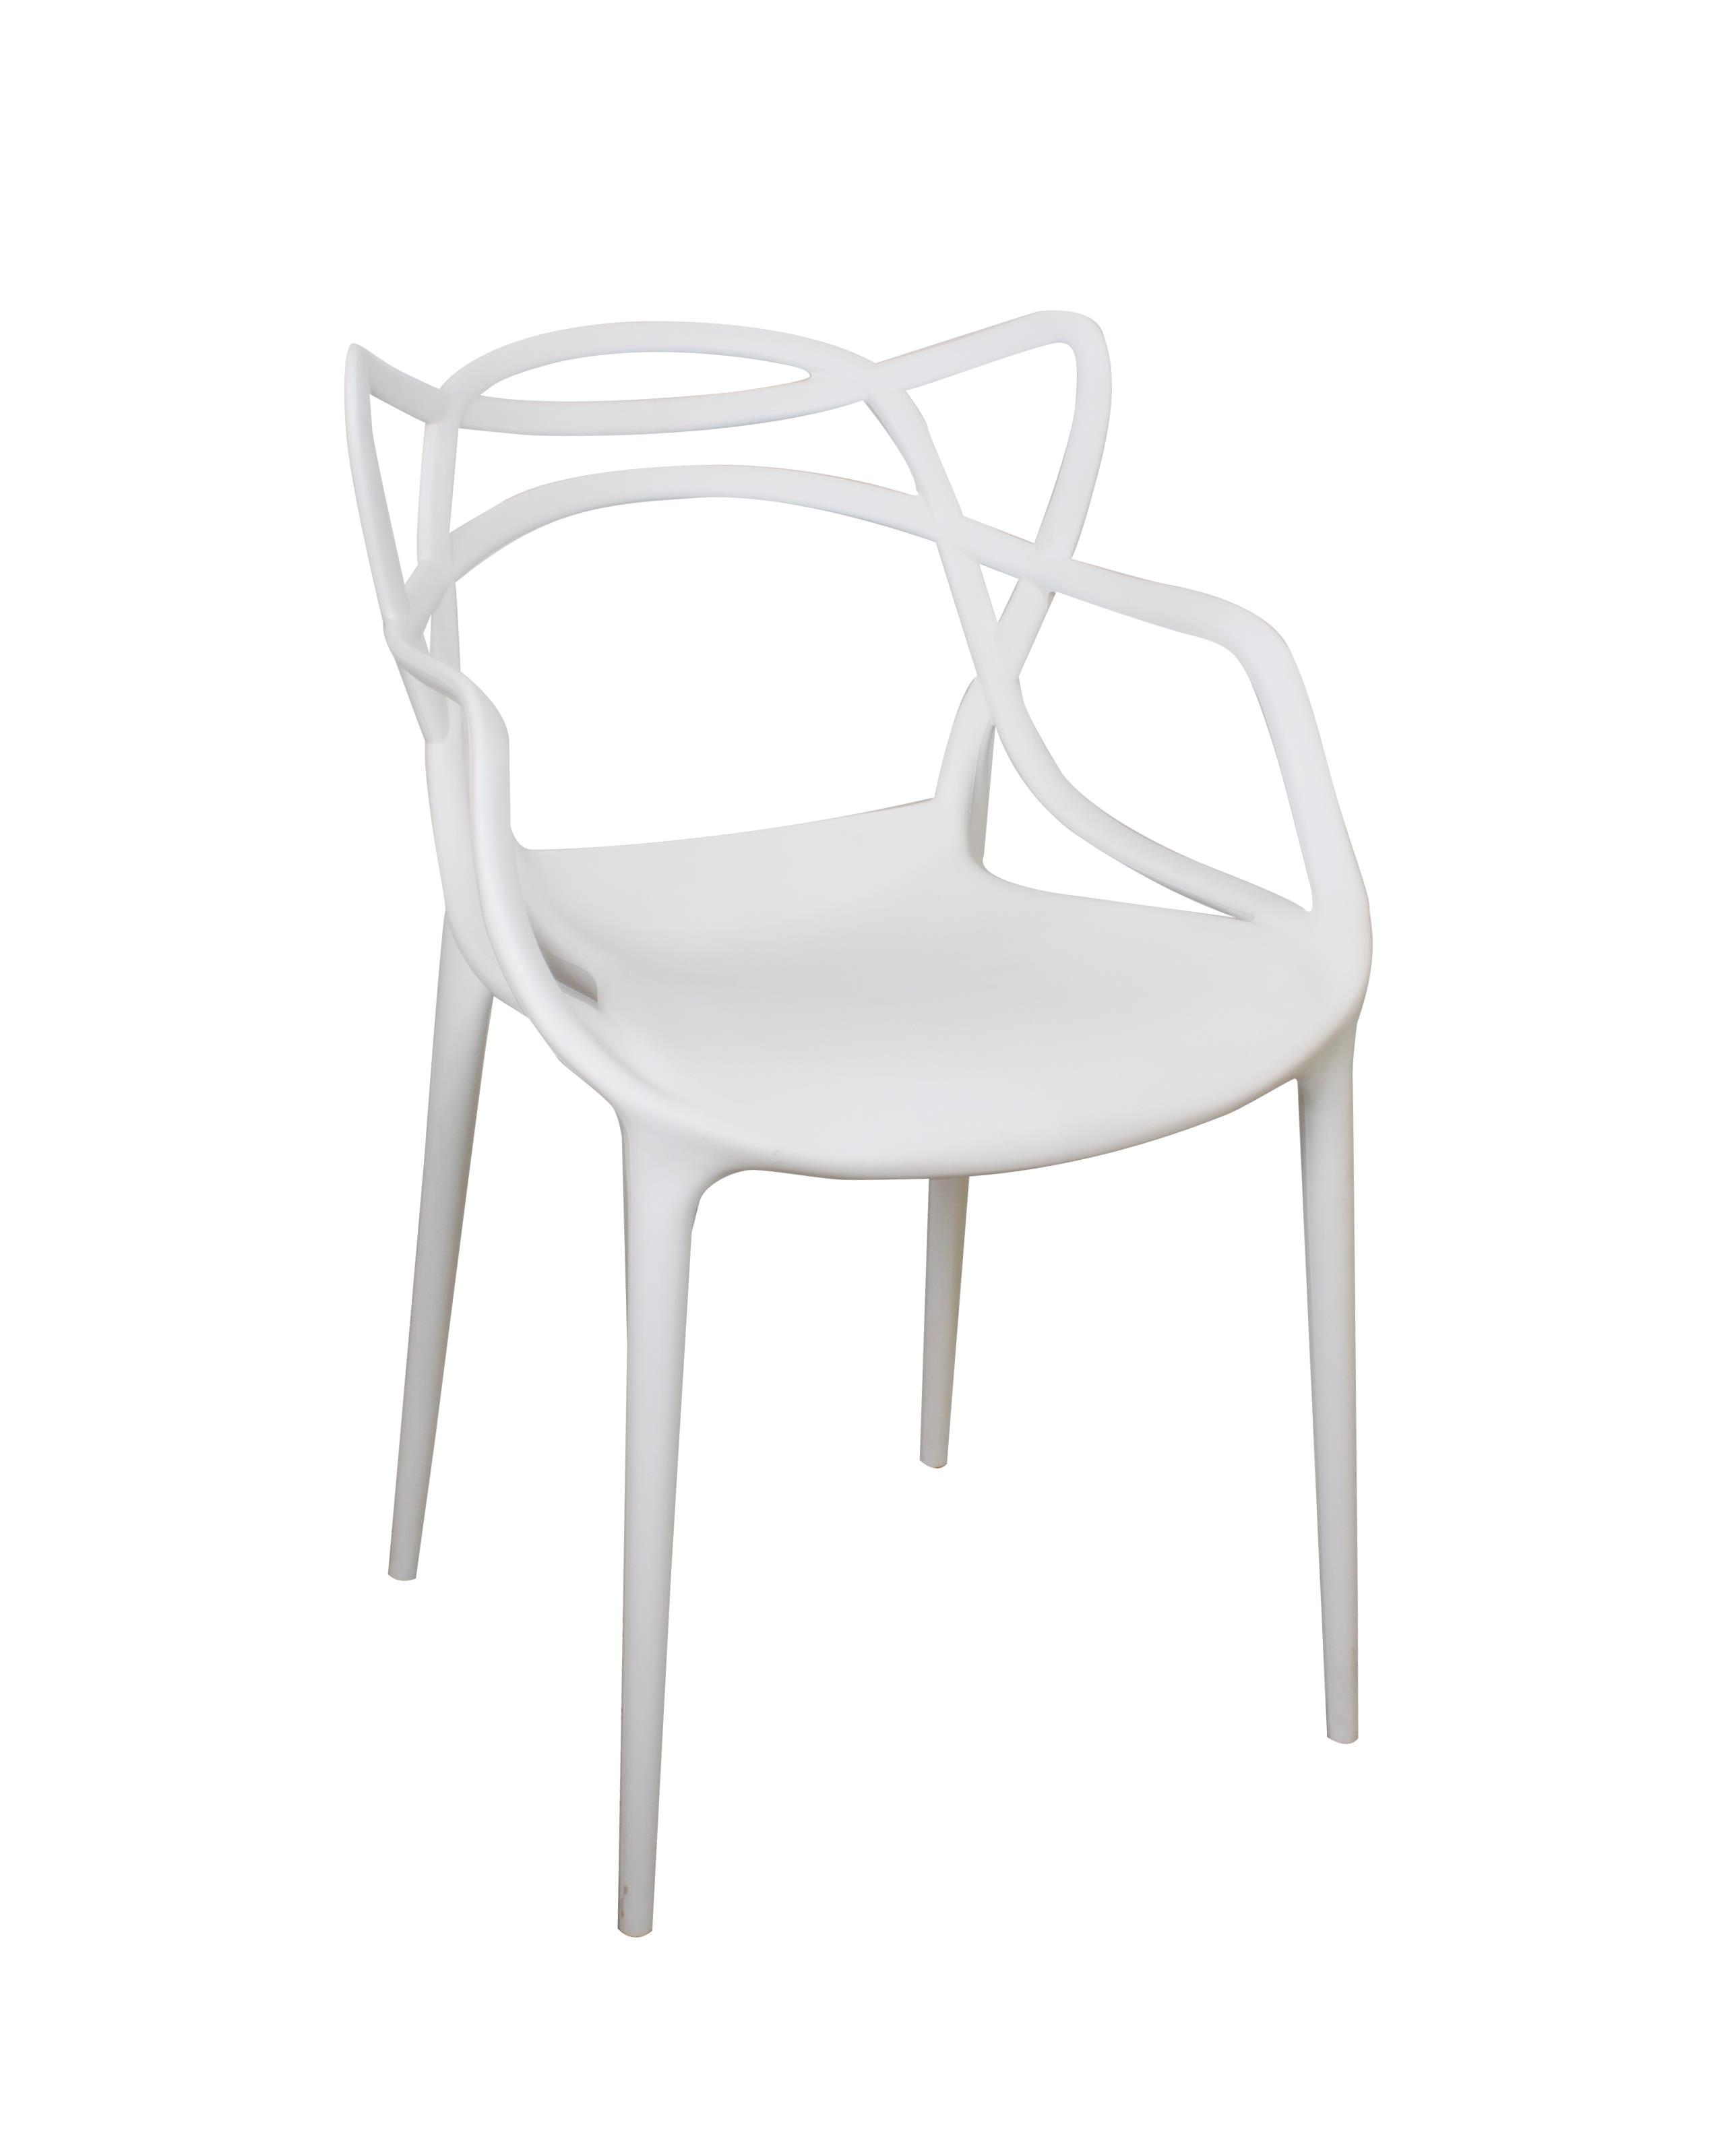 KIKA PP DINNING CHAIR WHITE